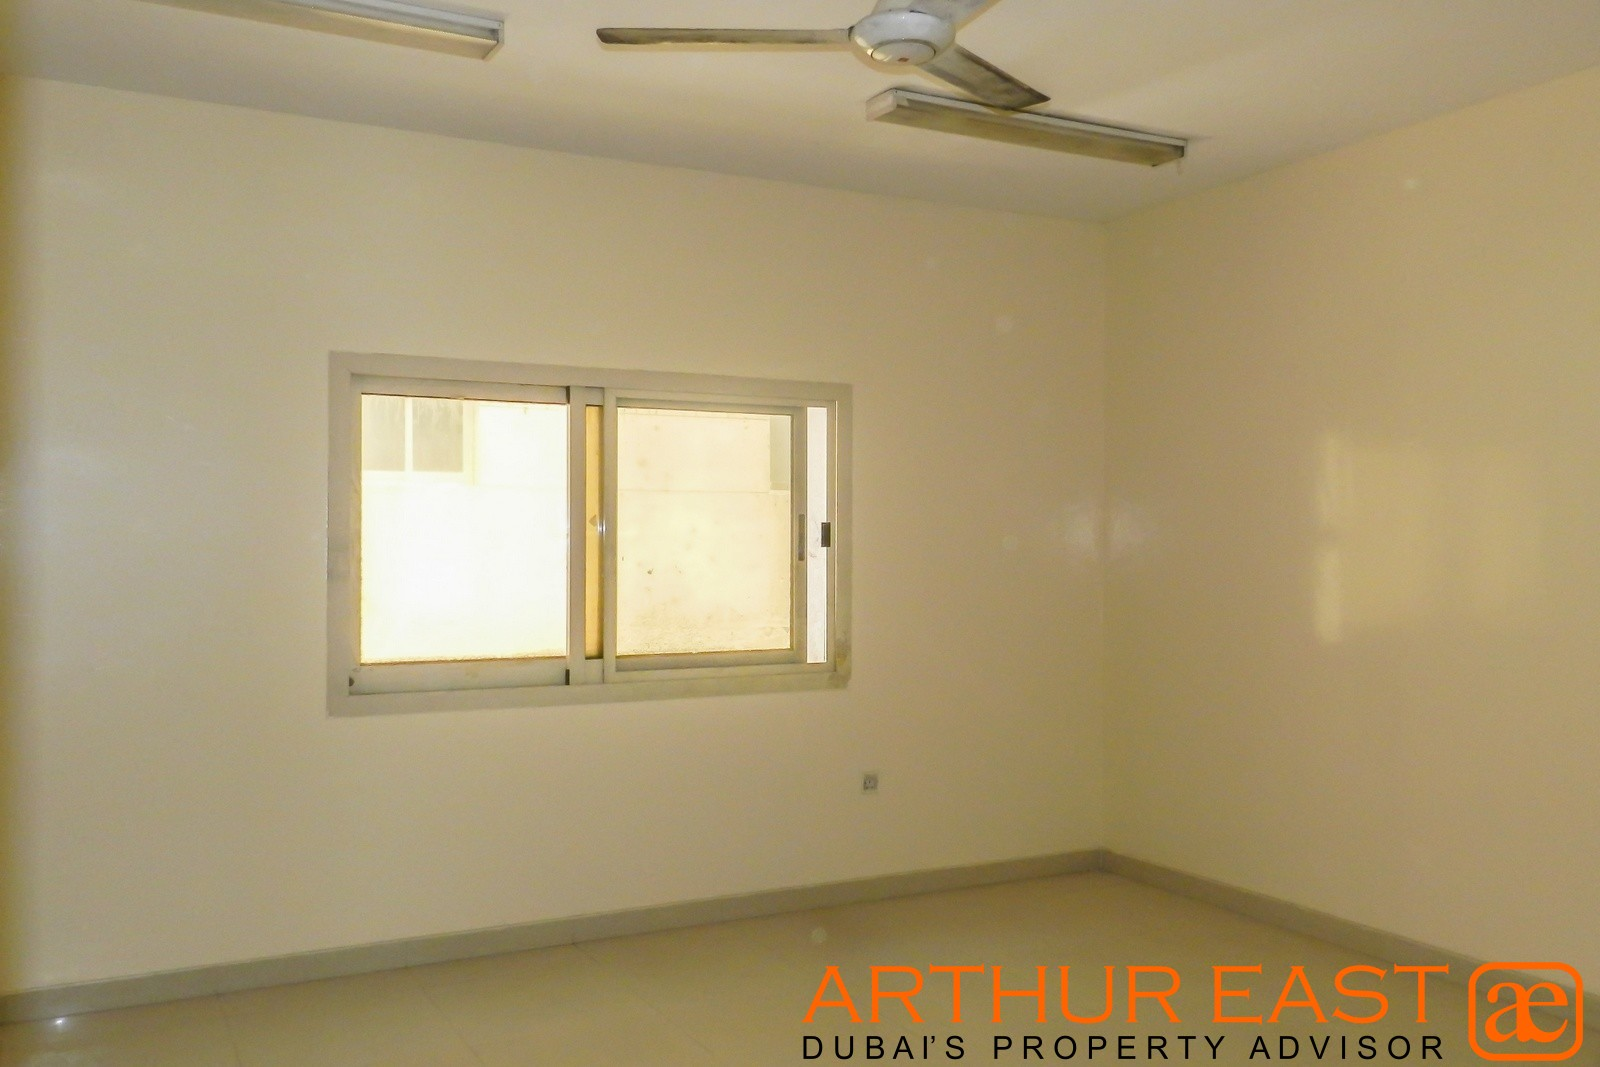 80-labour-rooms-available-aed-1800-per-room-in-jebel-ali